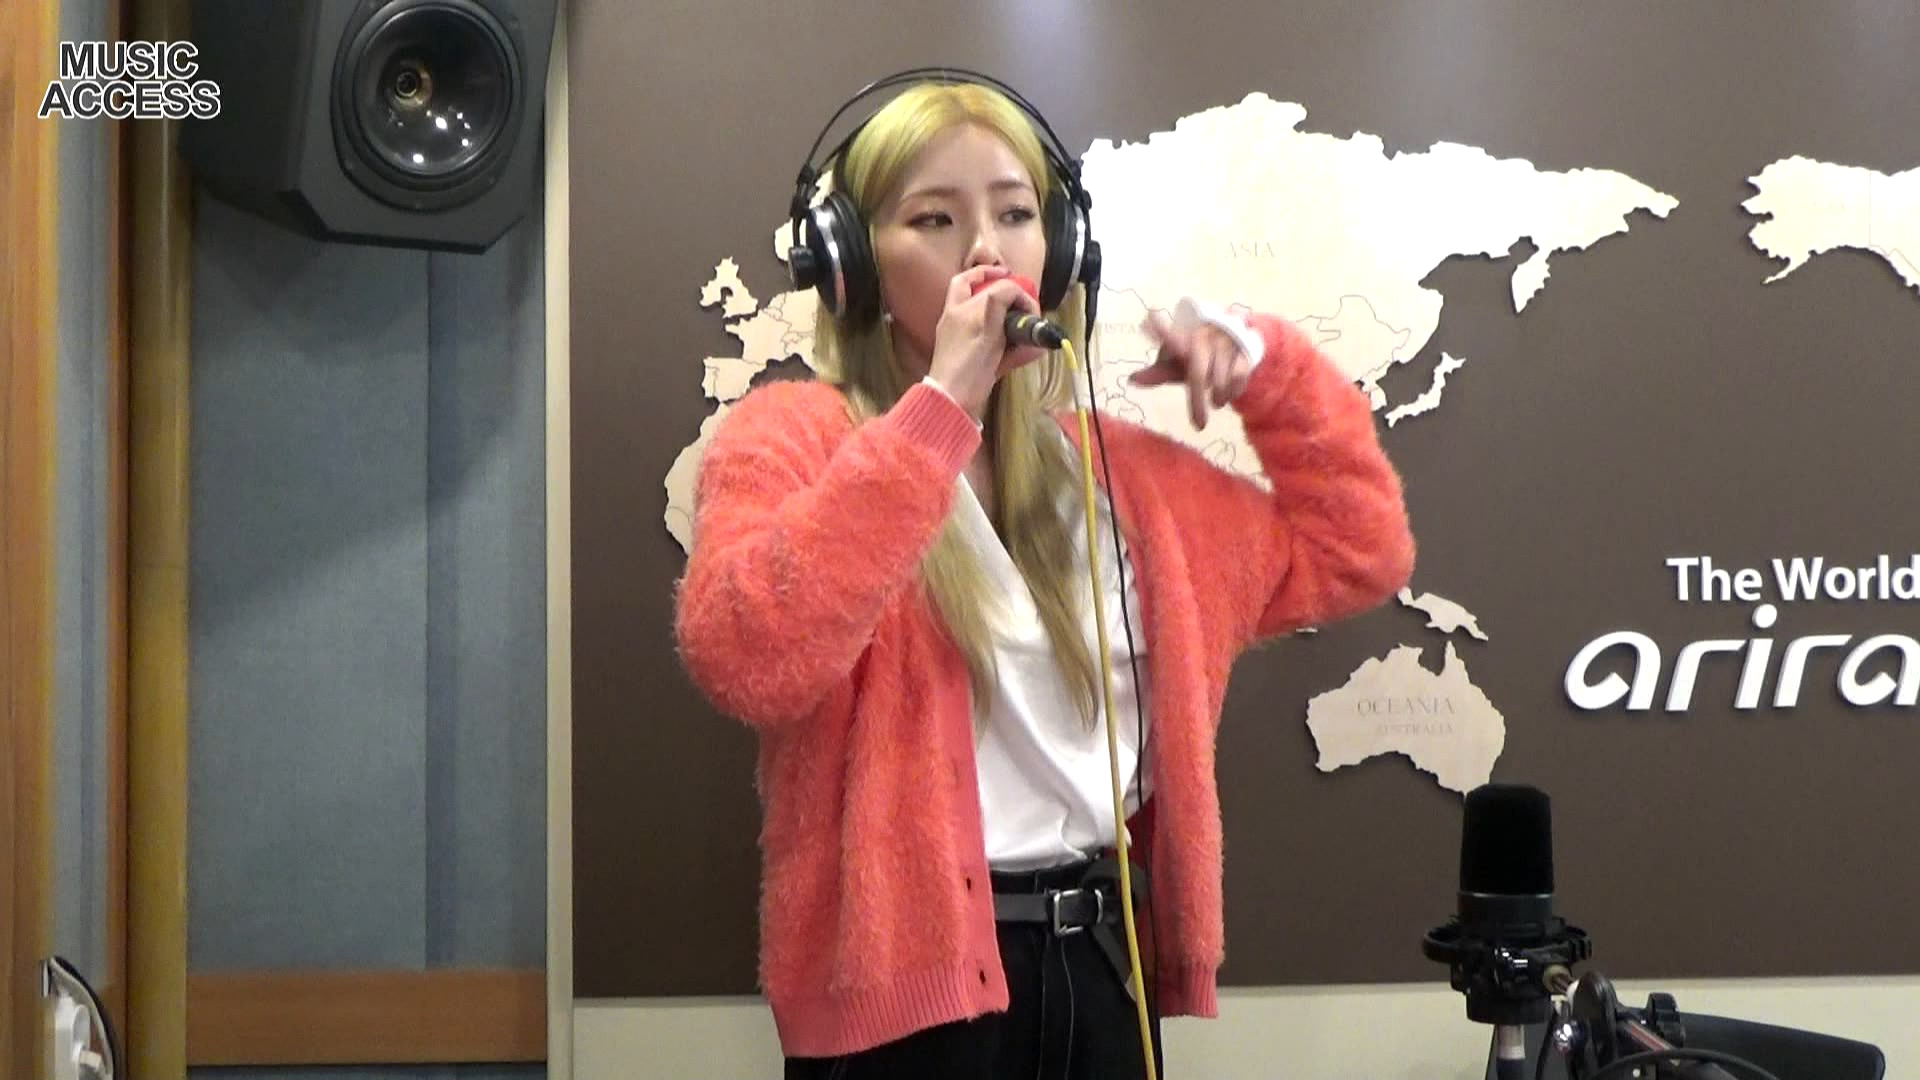 [Music Access] 헤이즈 (Heize)'s Singin' Live '널 너무 모르고 (Don't know you)'